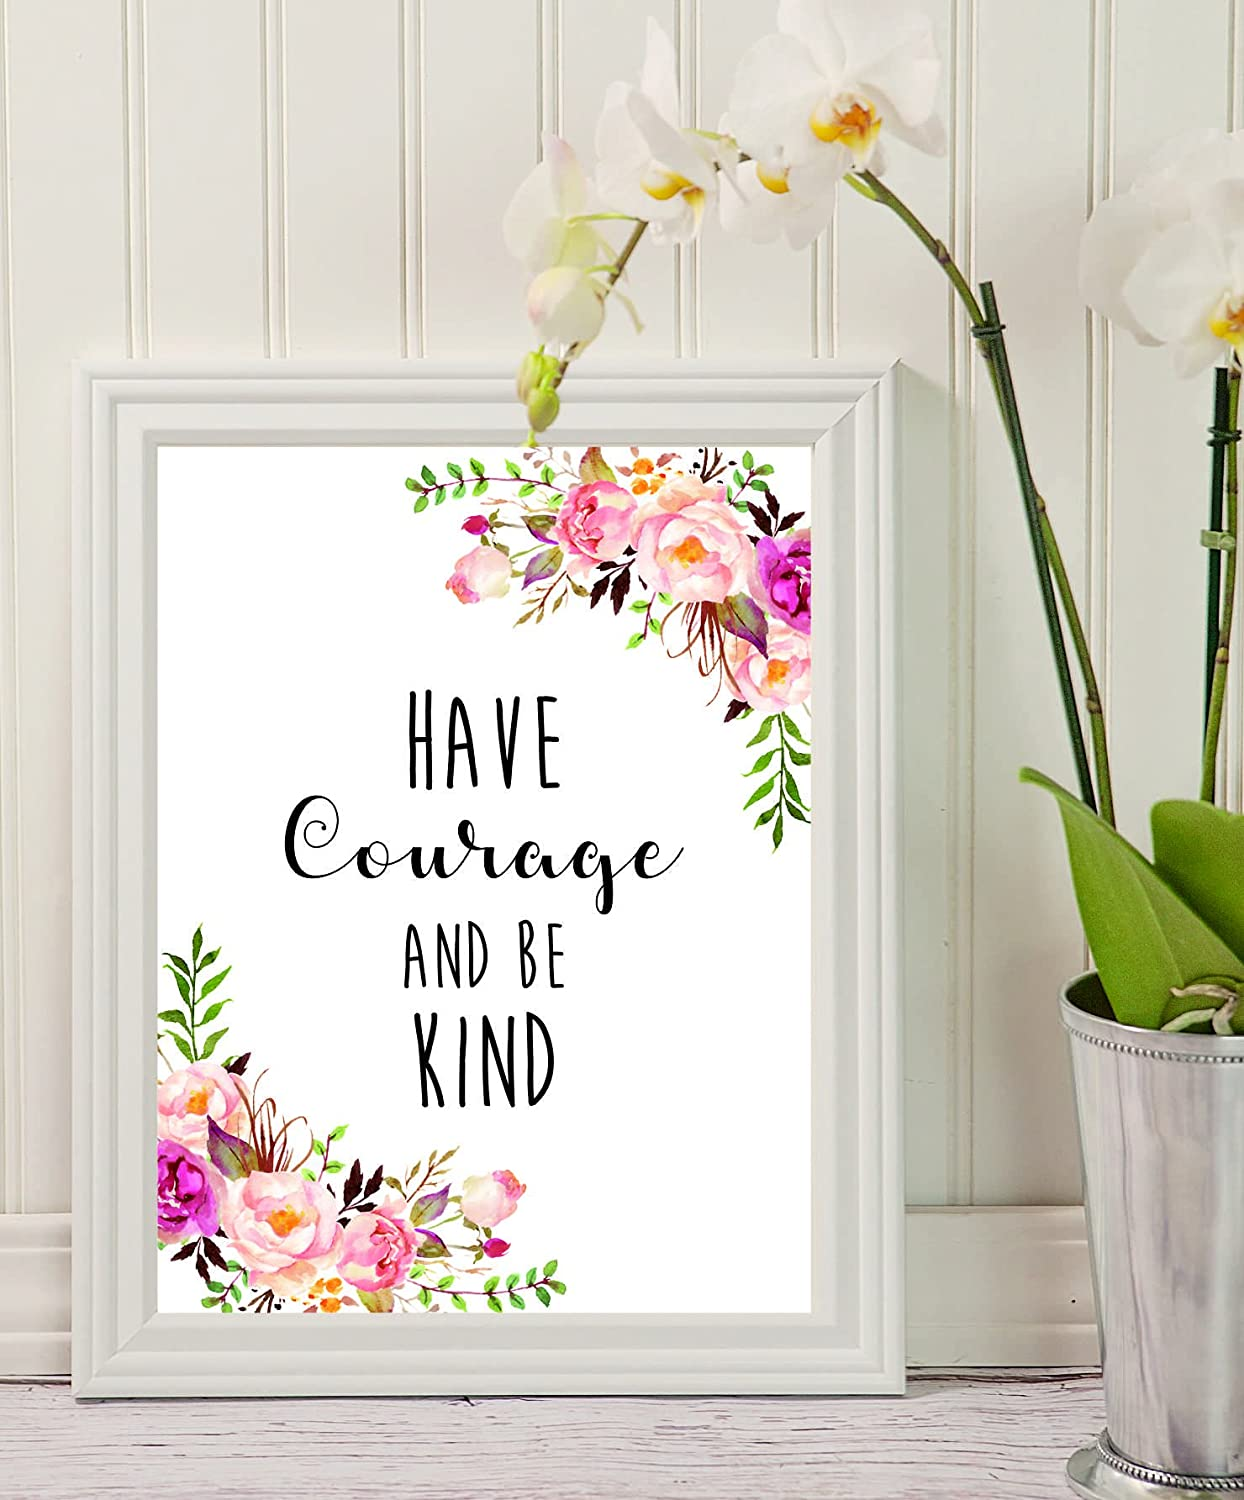 Wall Art - Have Courage and Be Kind - mom gift - teacher gift- small sign- Printable Quote - Motivational Print - Wall Decor - Home Decor - College Dorm Room Decorations - Living Room Decor